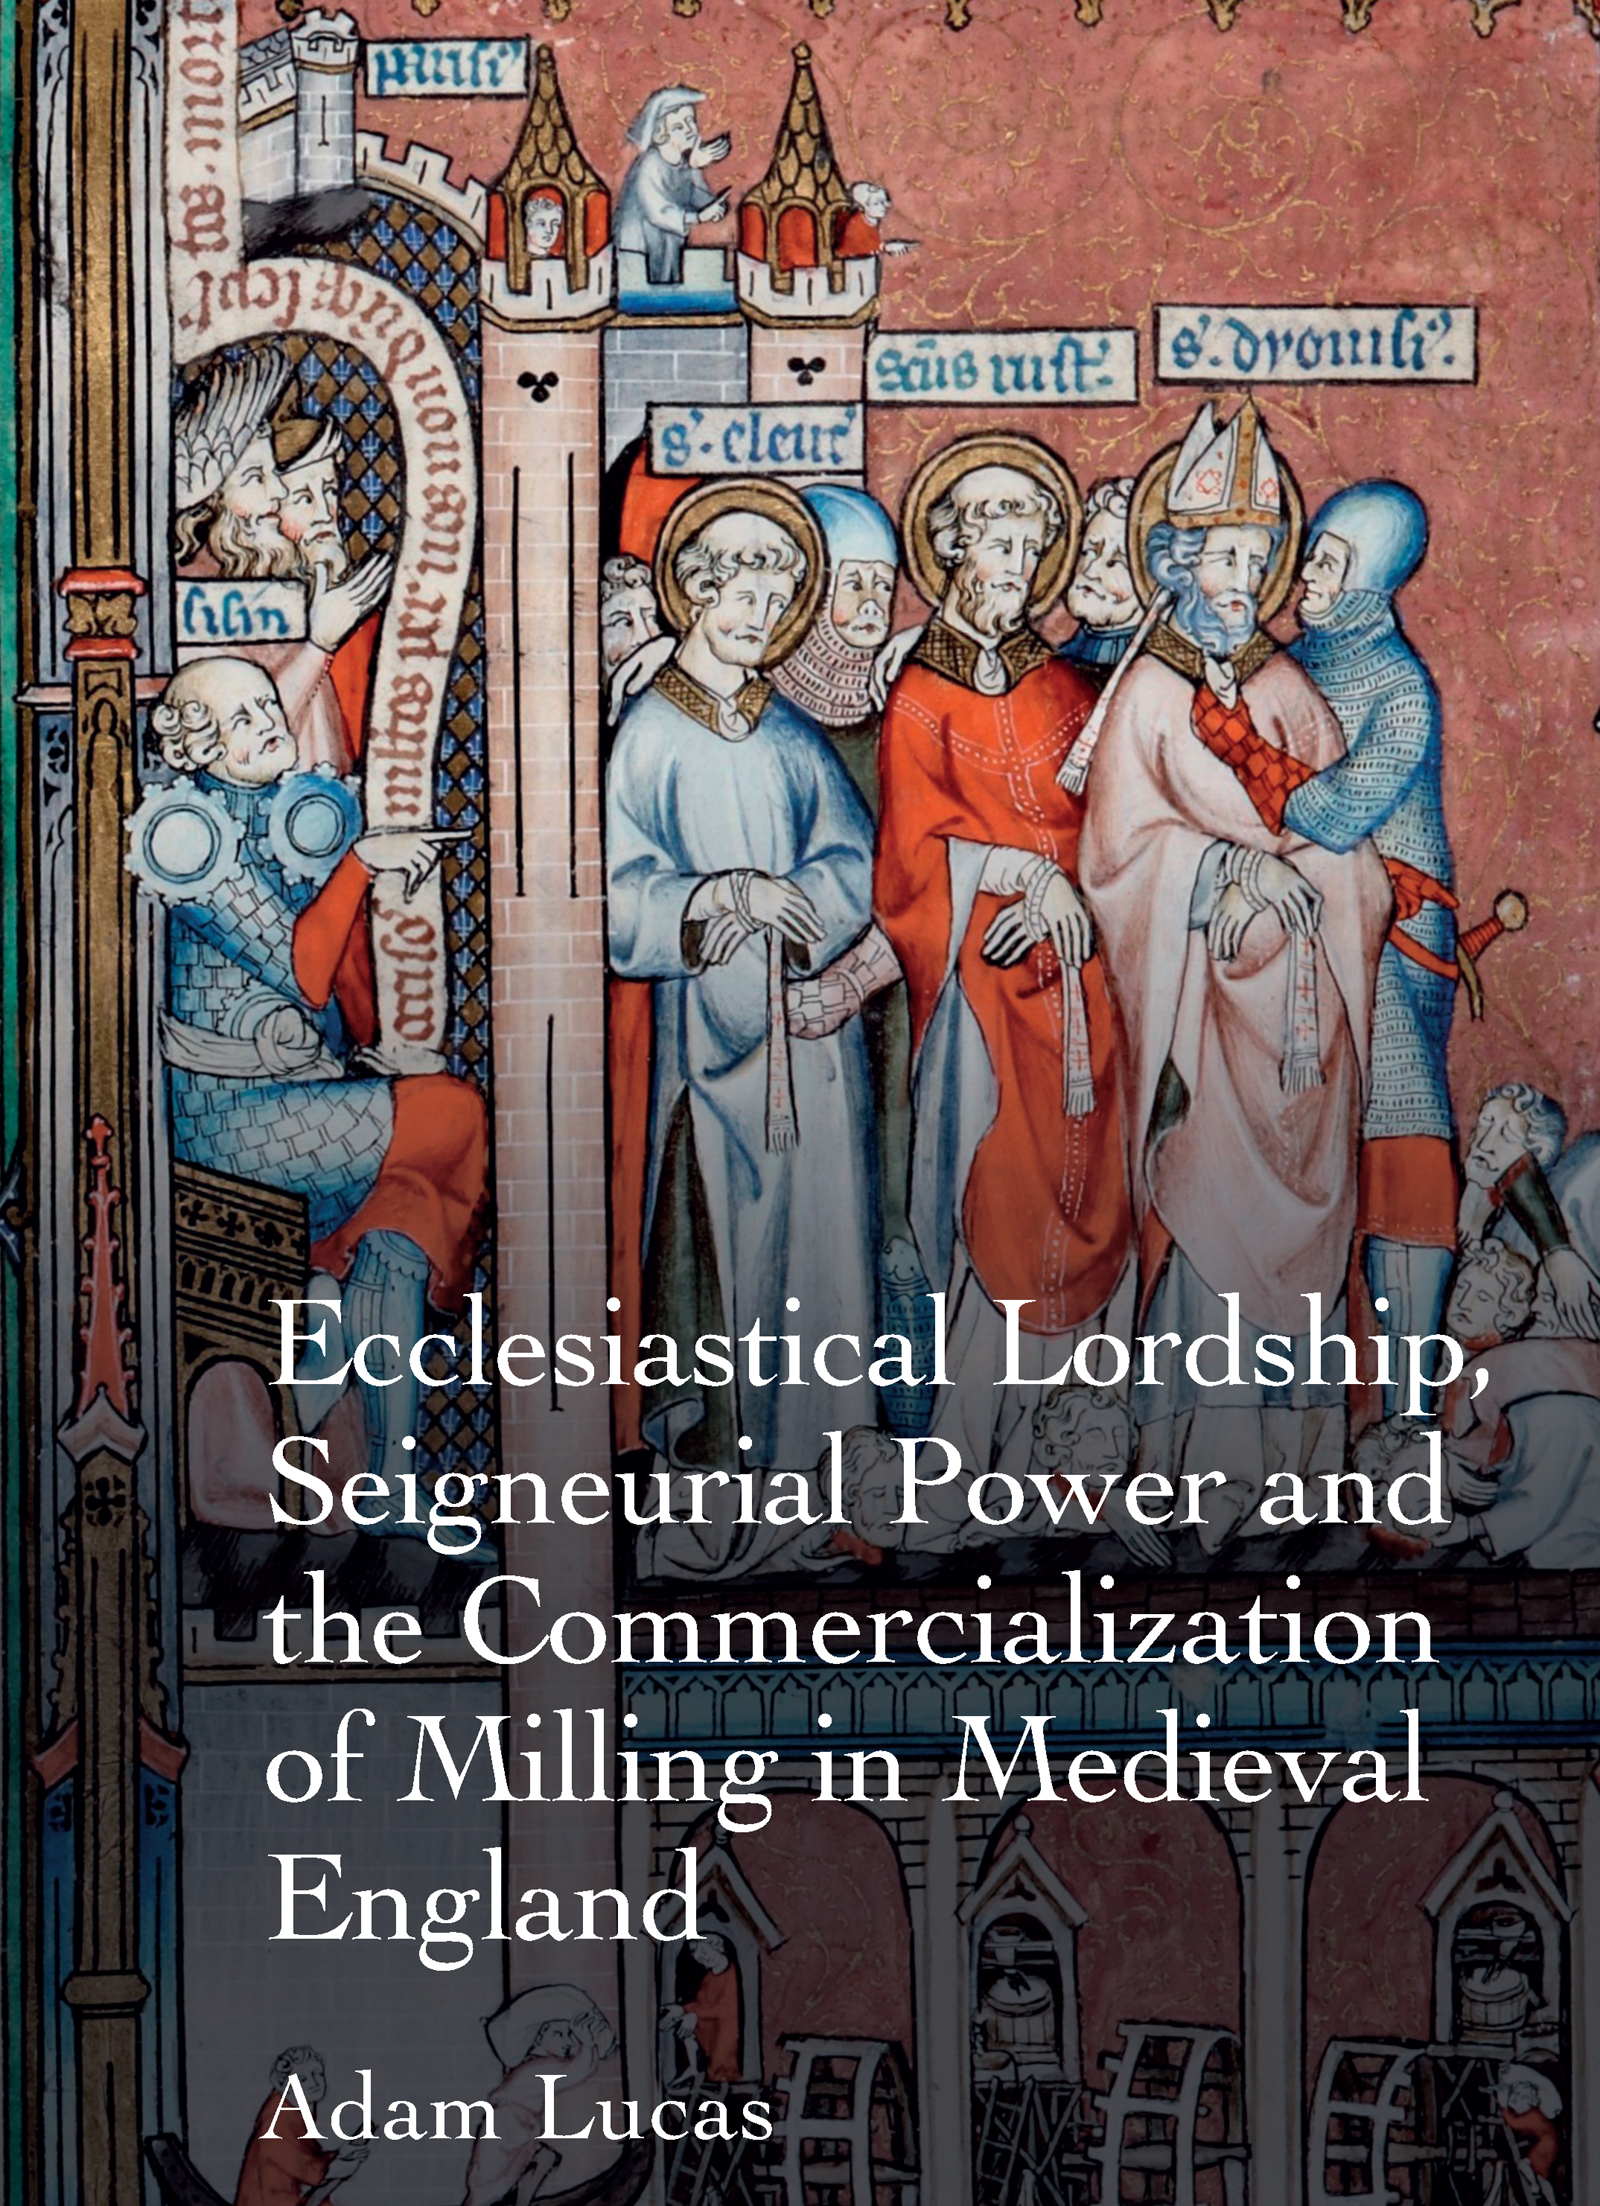 Ecclesiastical Lordship, Seigneurial Power and the Commercialization of Milling in Medieval England: 1st Edition (Hardback) book cover